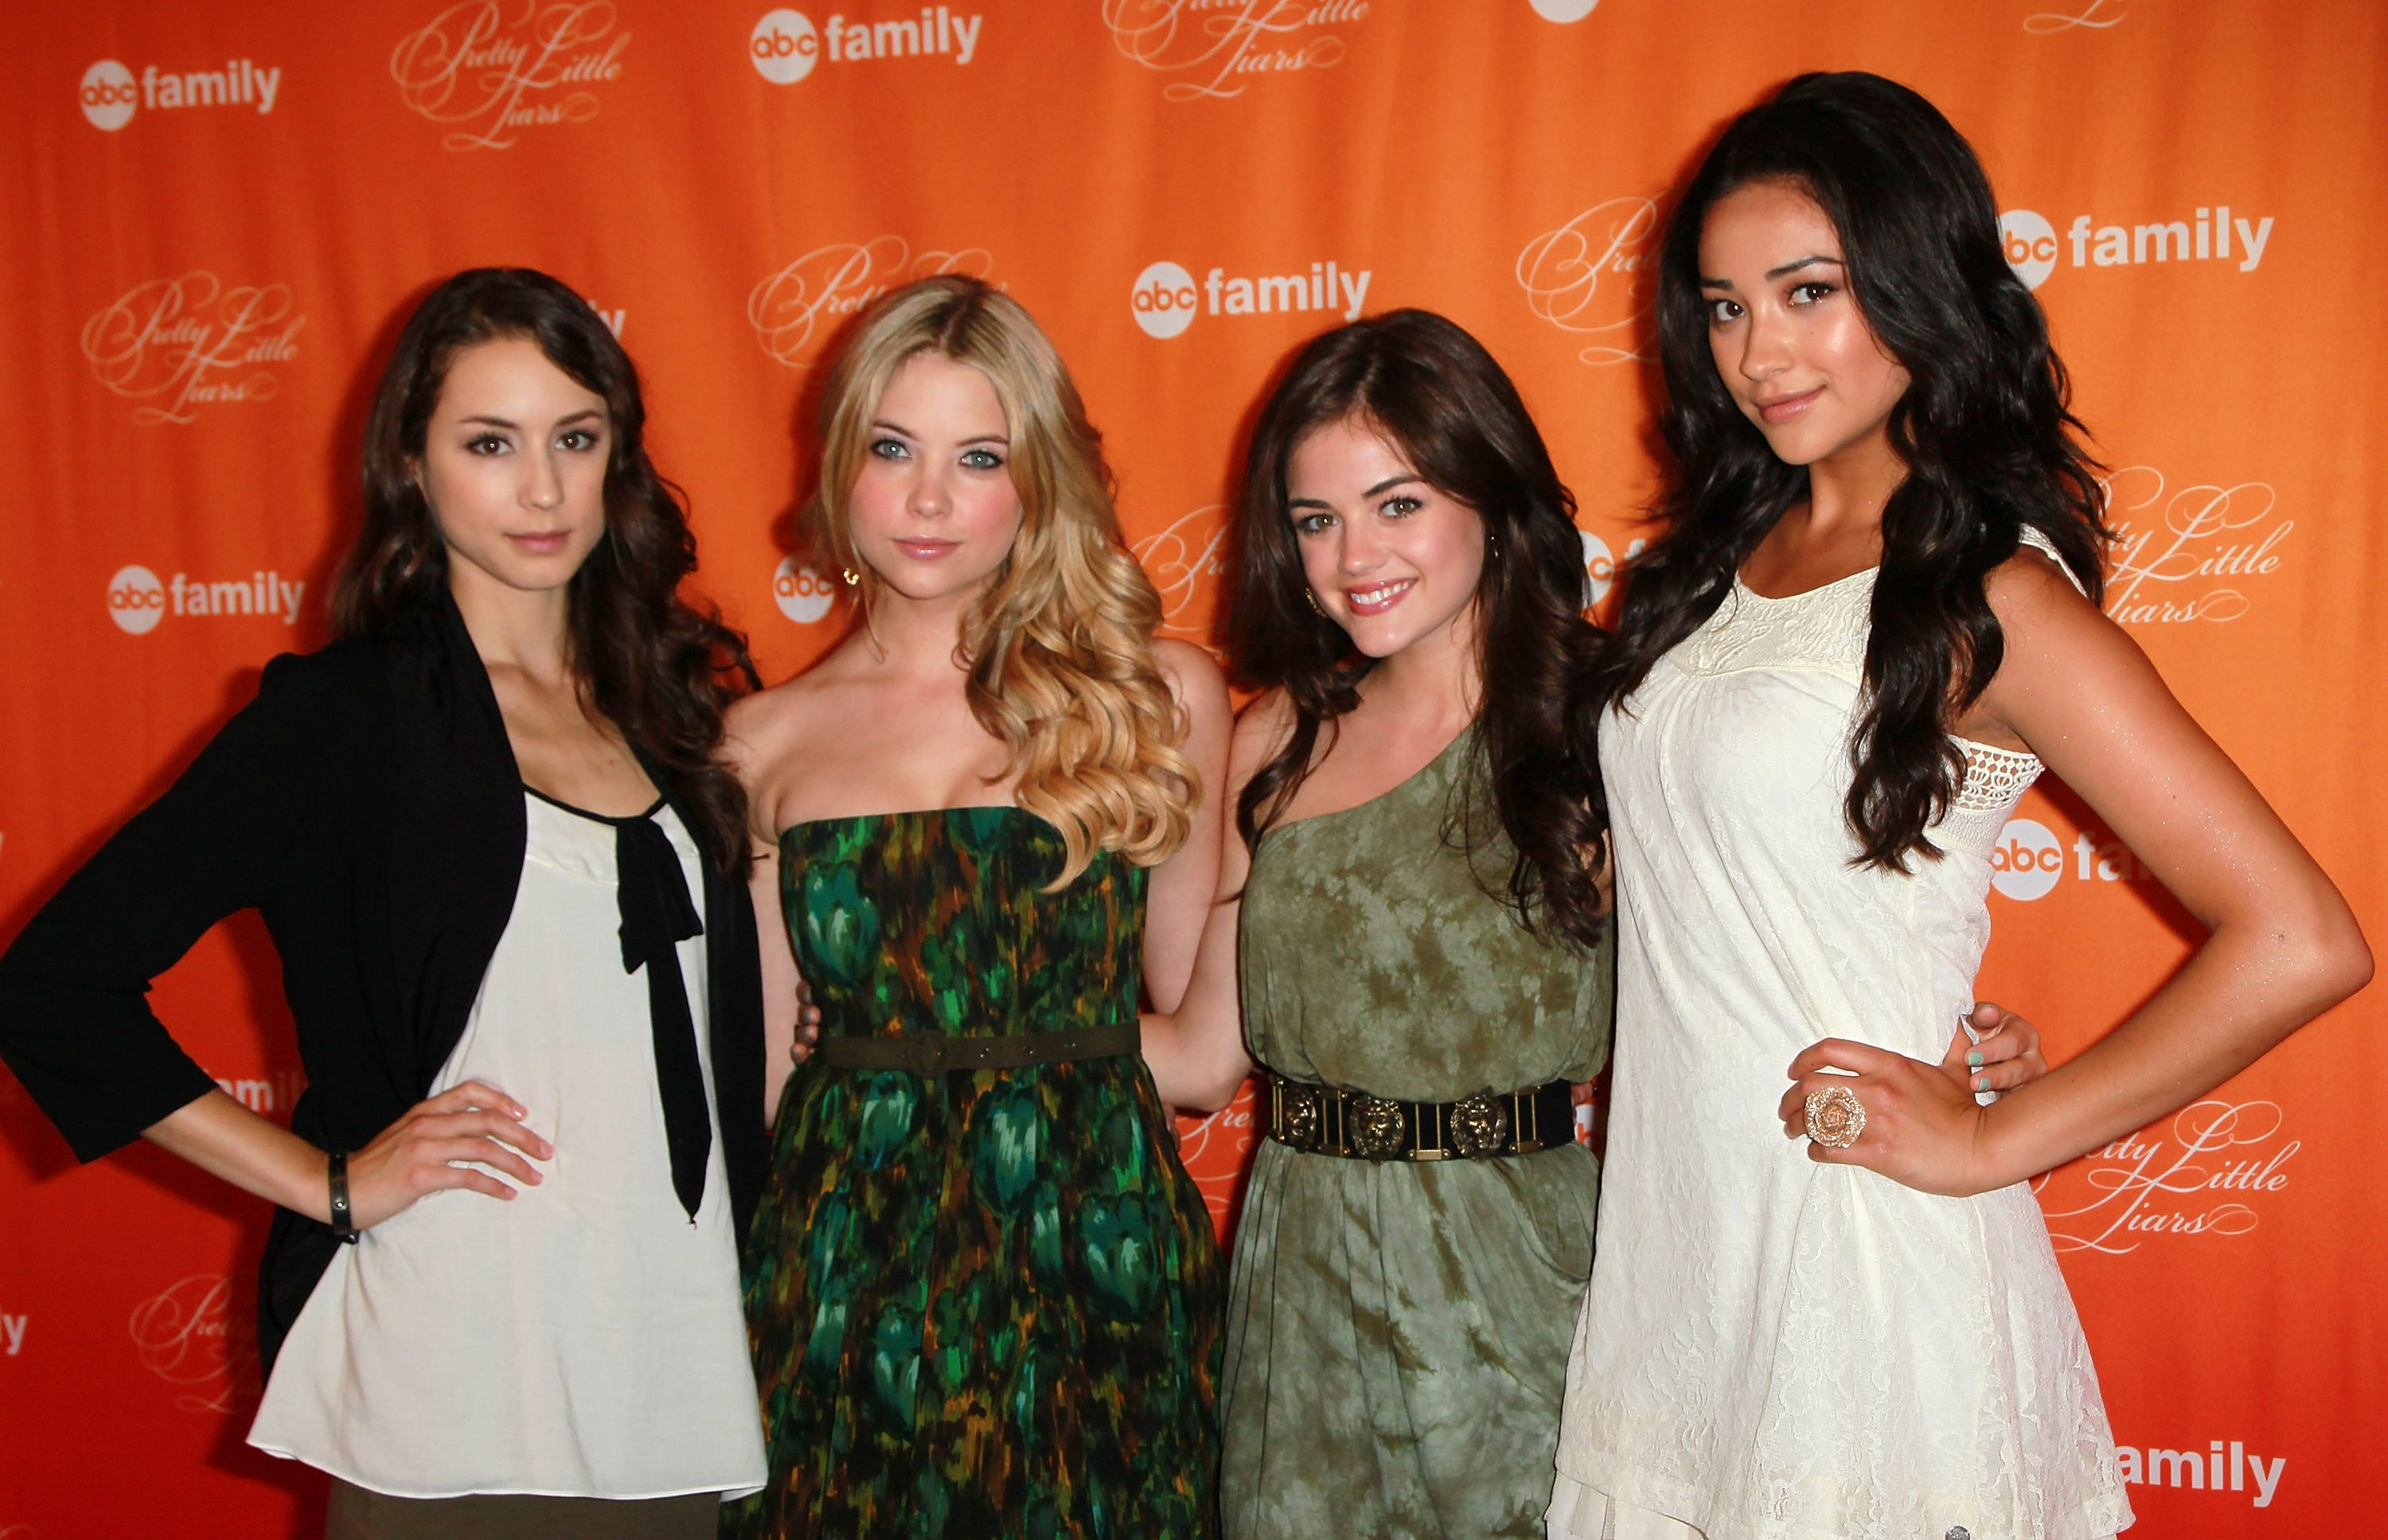 The main cast of Pretty Little Liars together / Getty Images